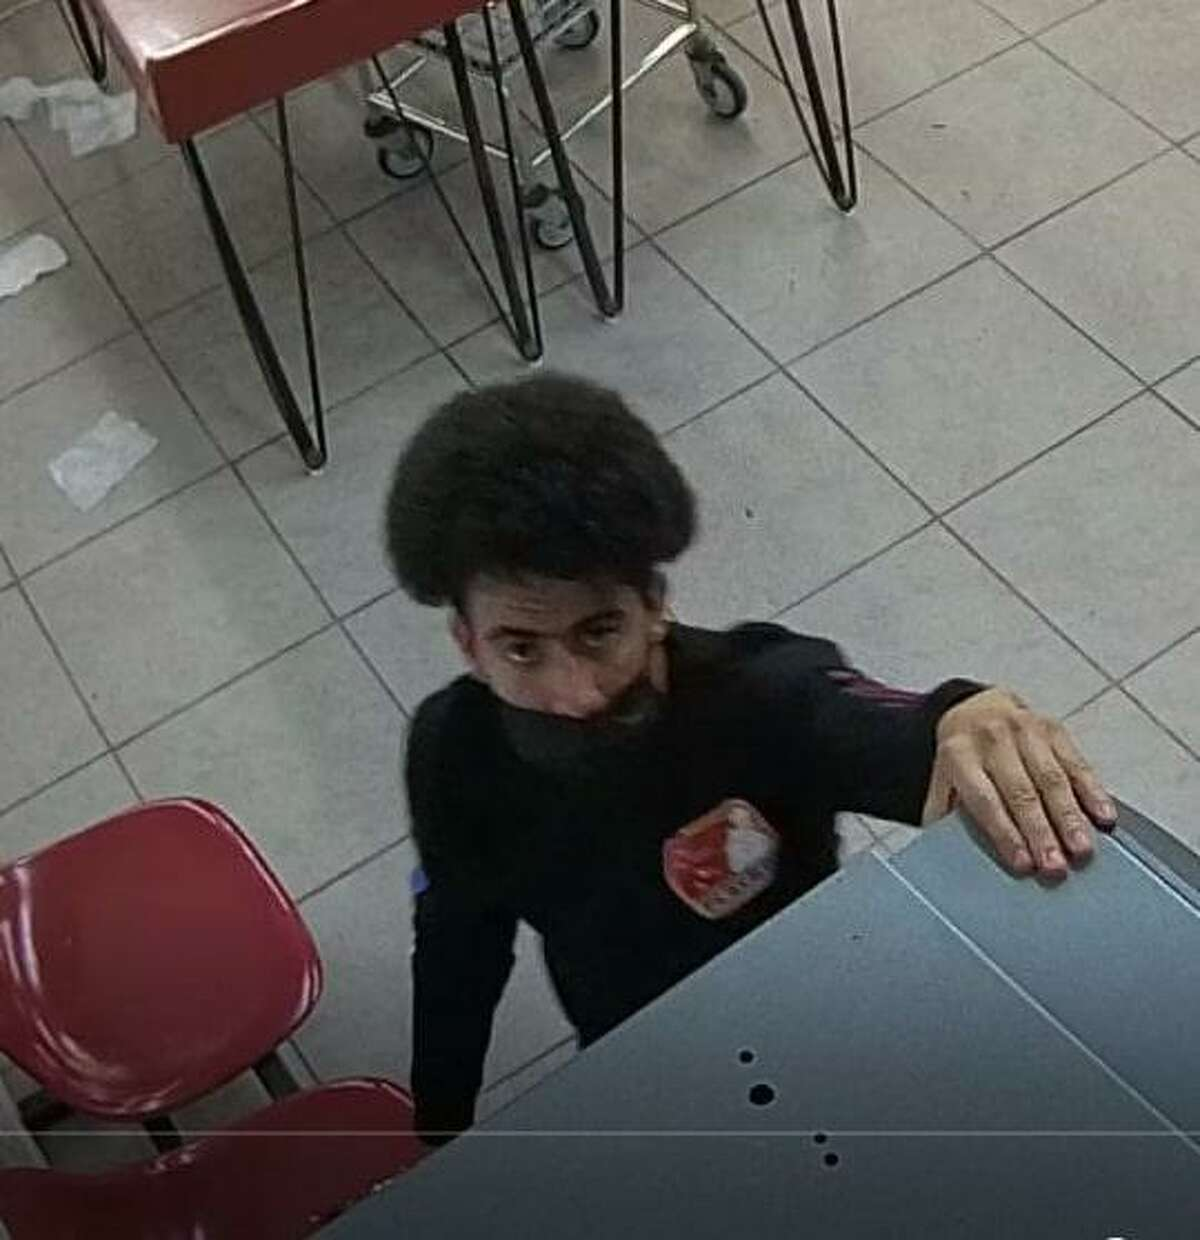 Stamford police believe this man caused over $2,000 in damages while trying to break into vending machines inside of a local laundromat.